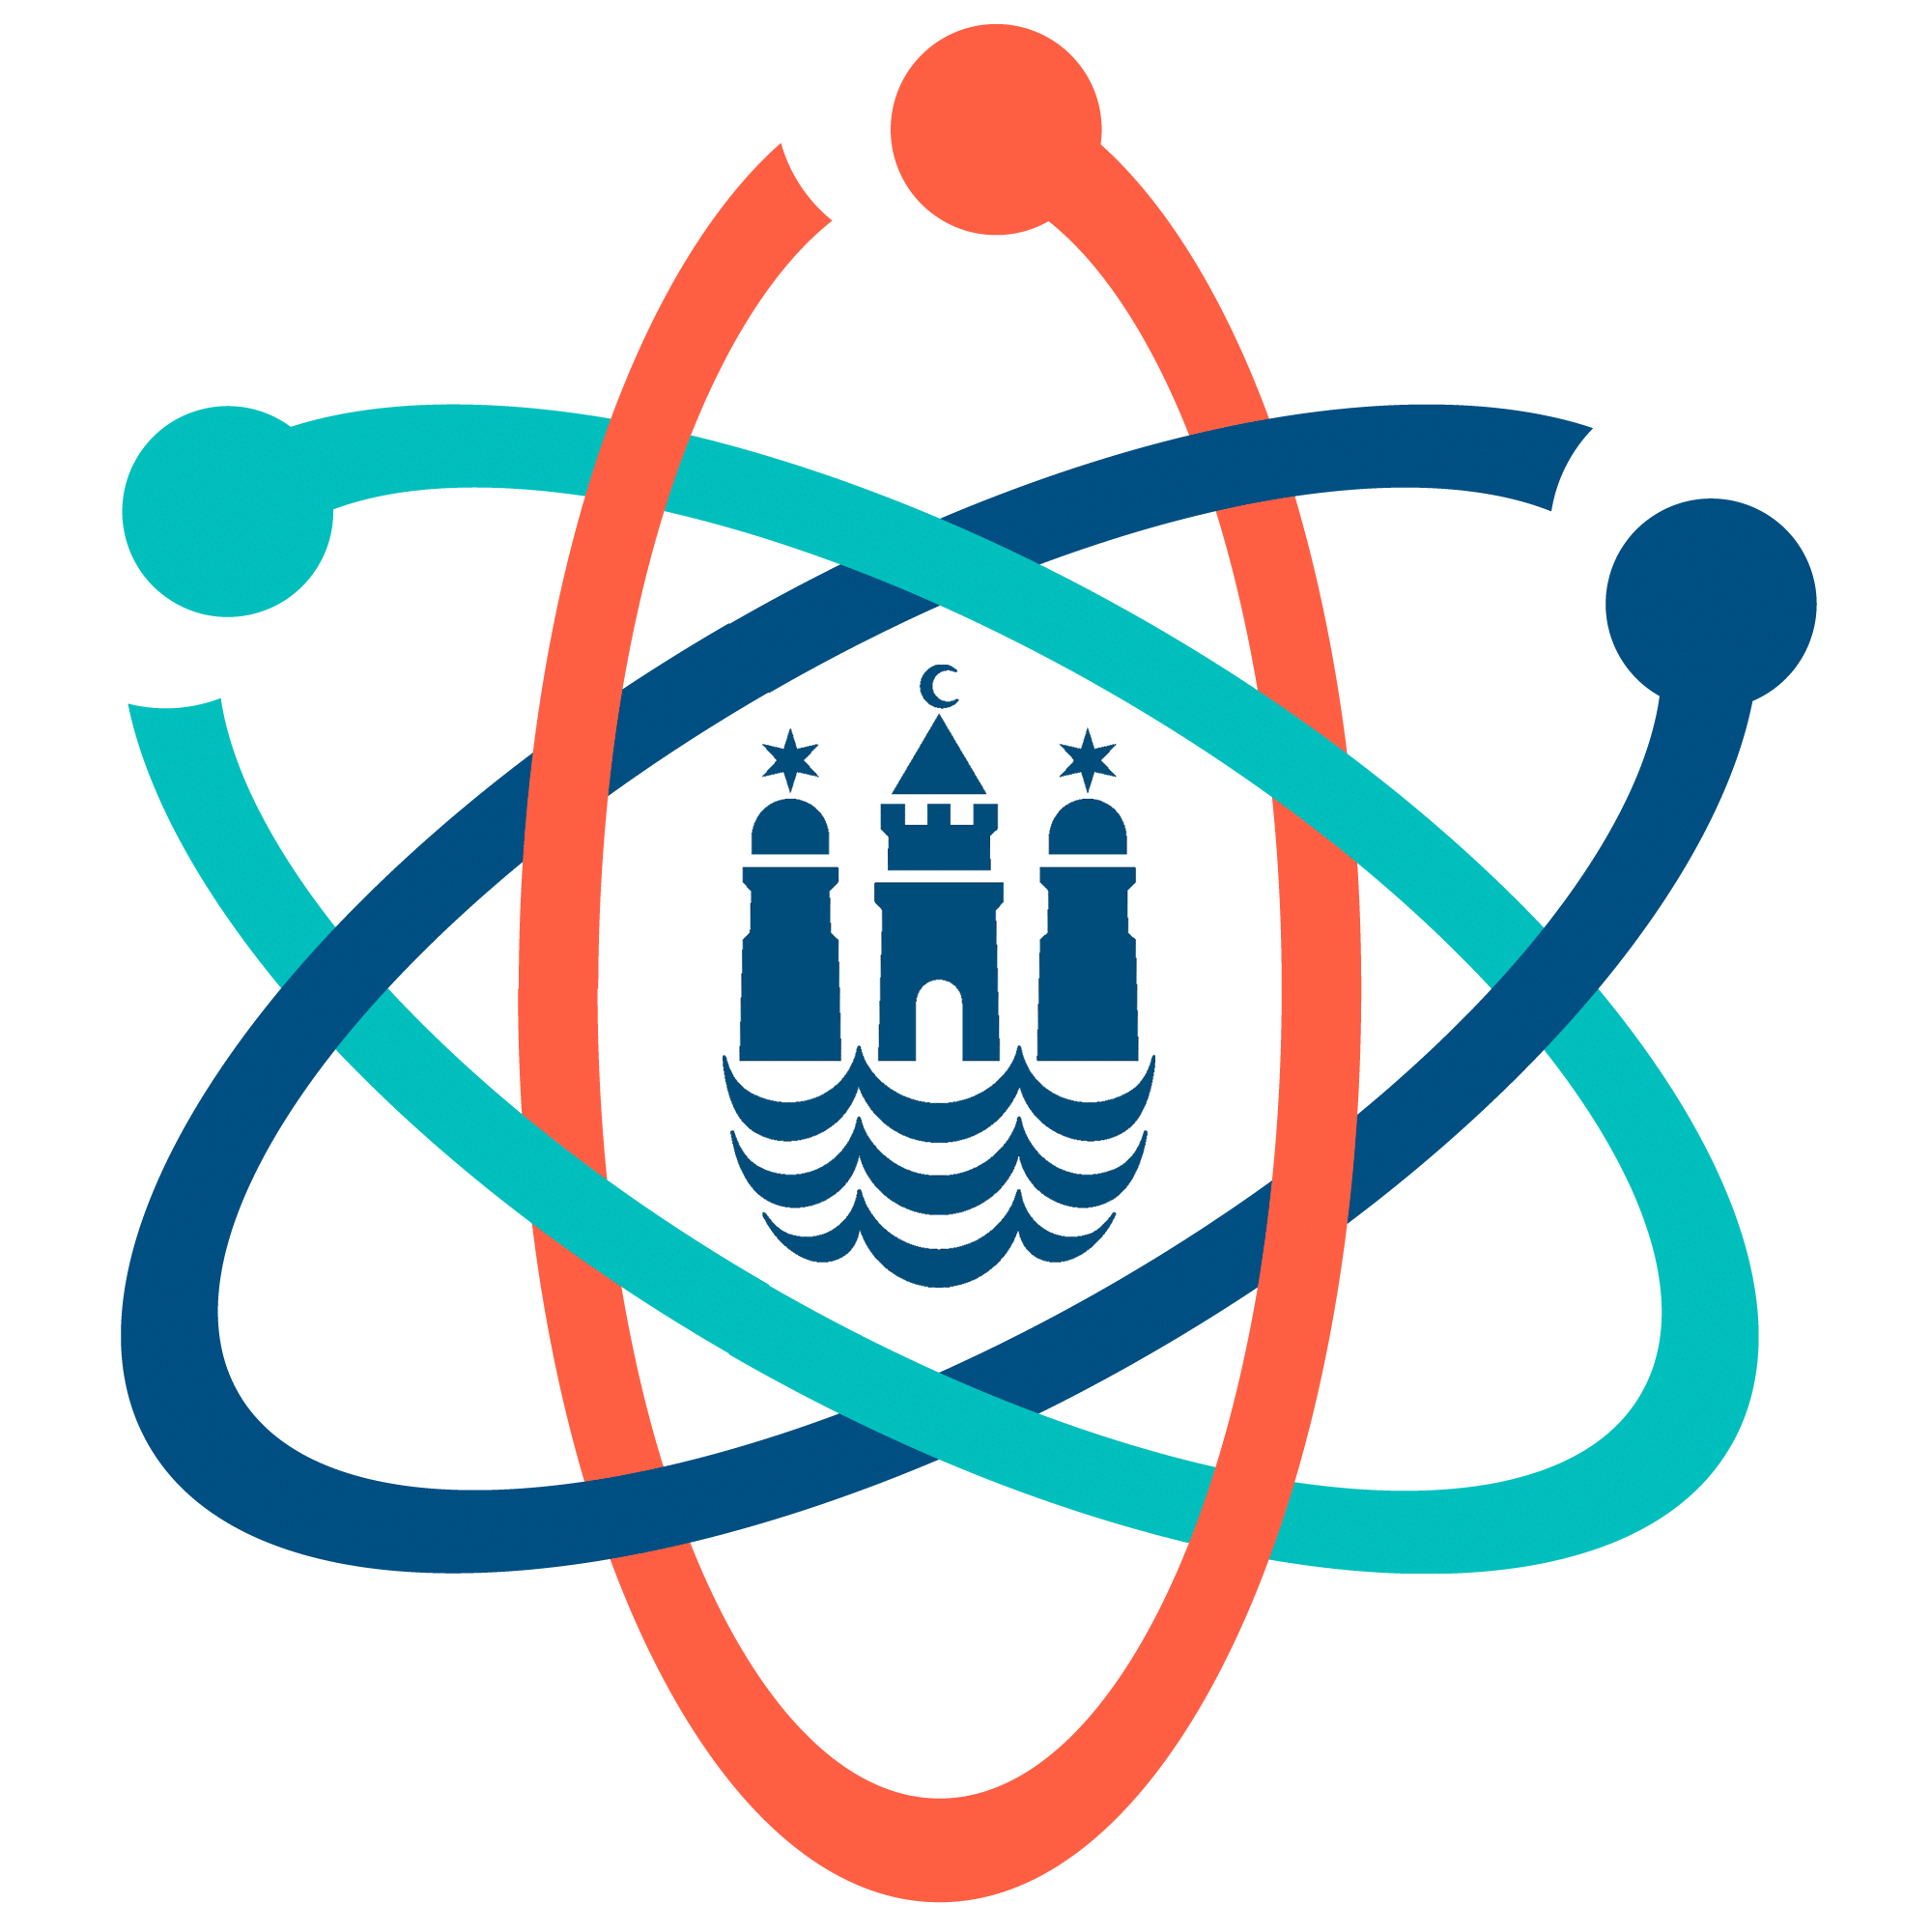 MARCH FOR SCIENCE Denmark logo